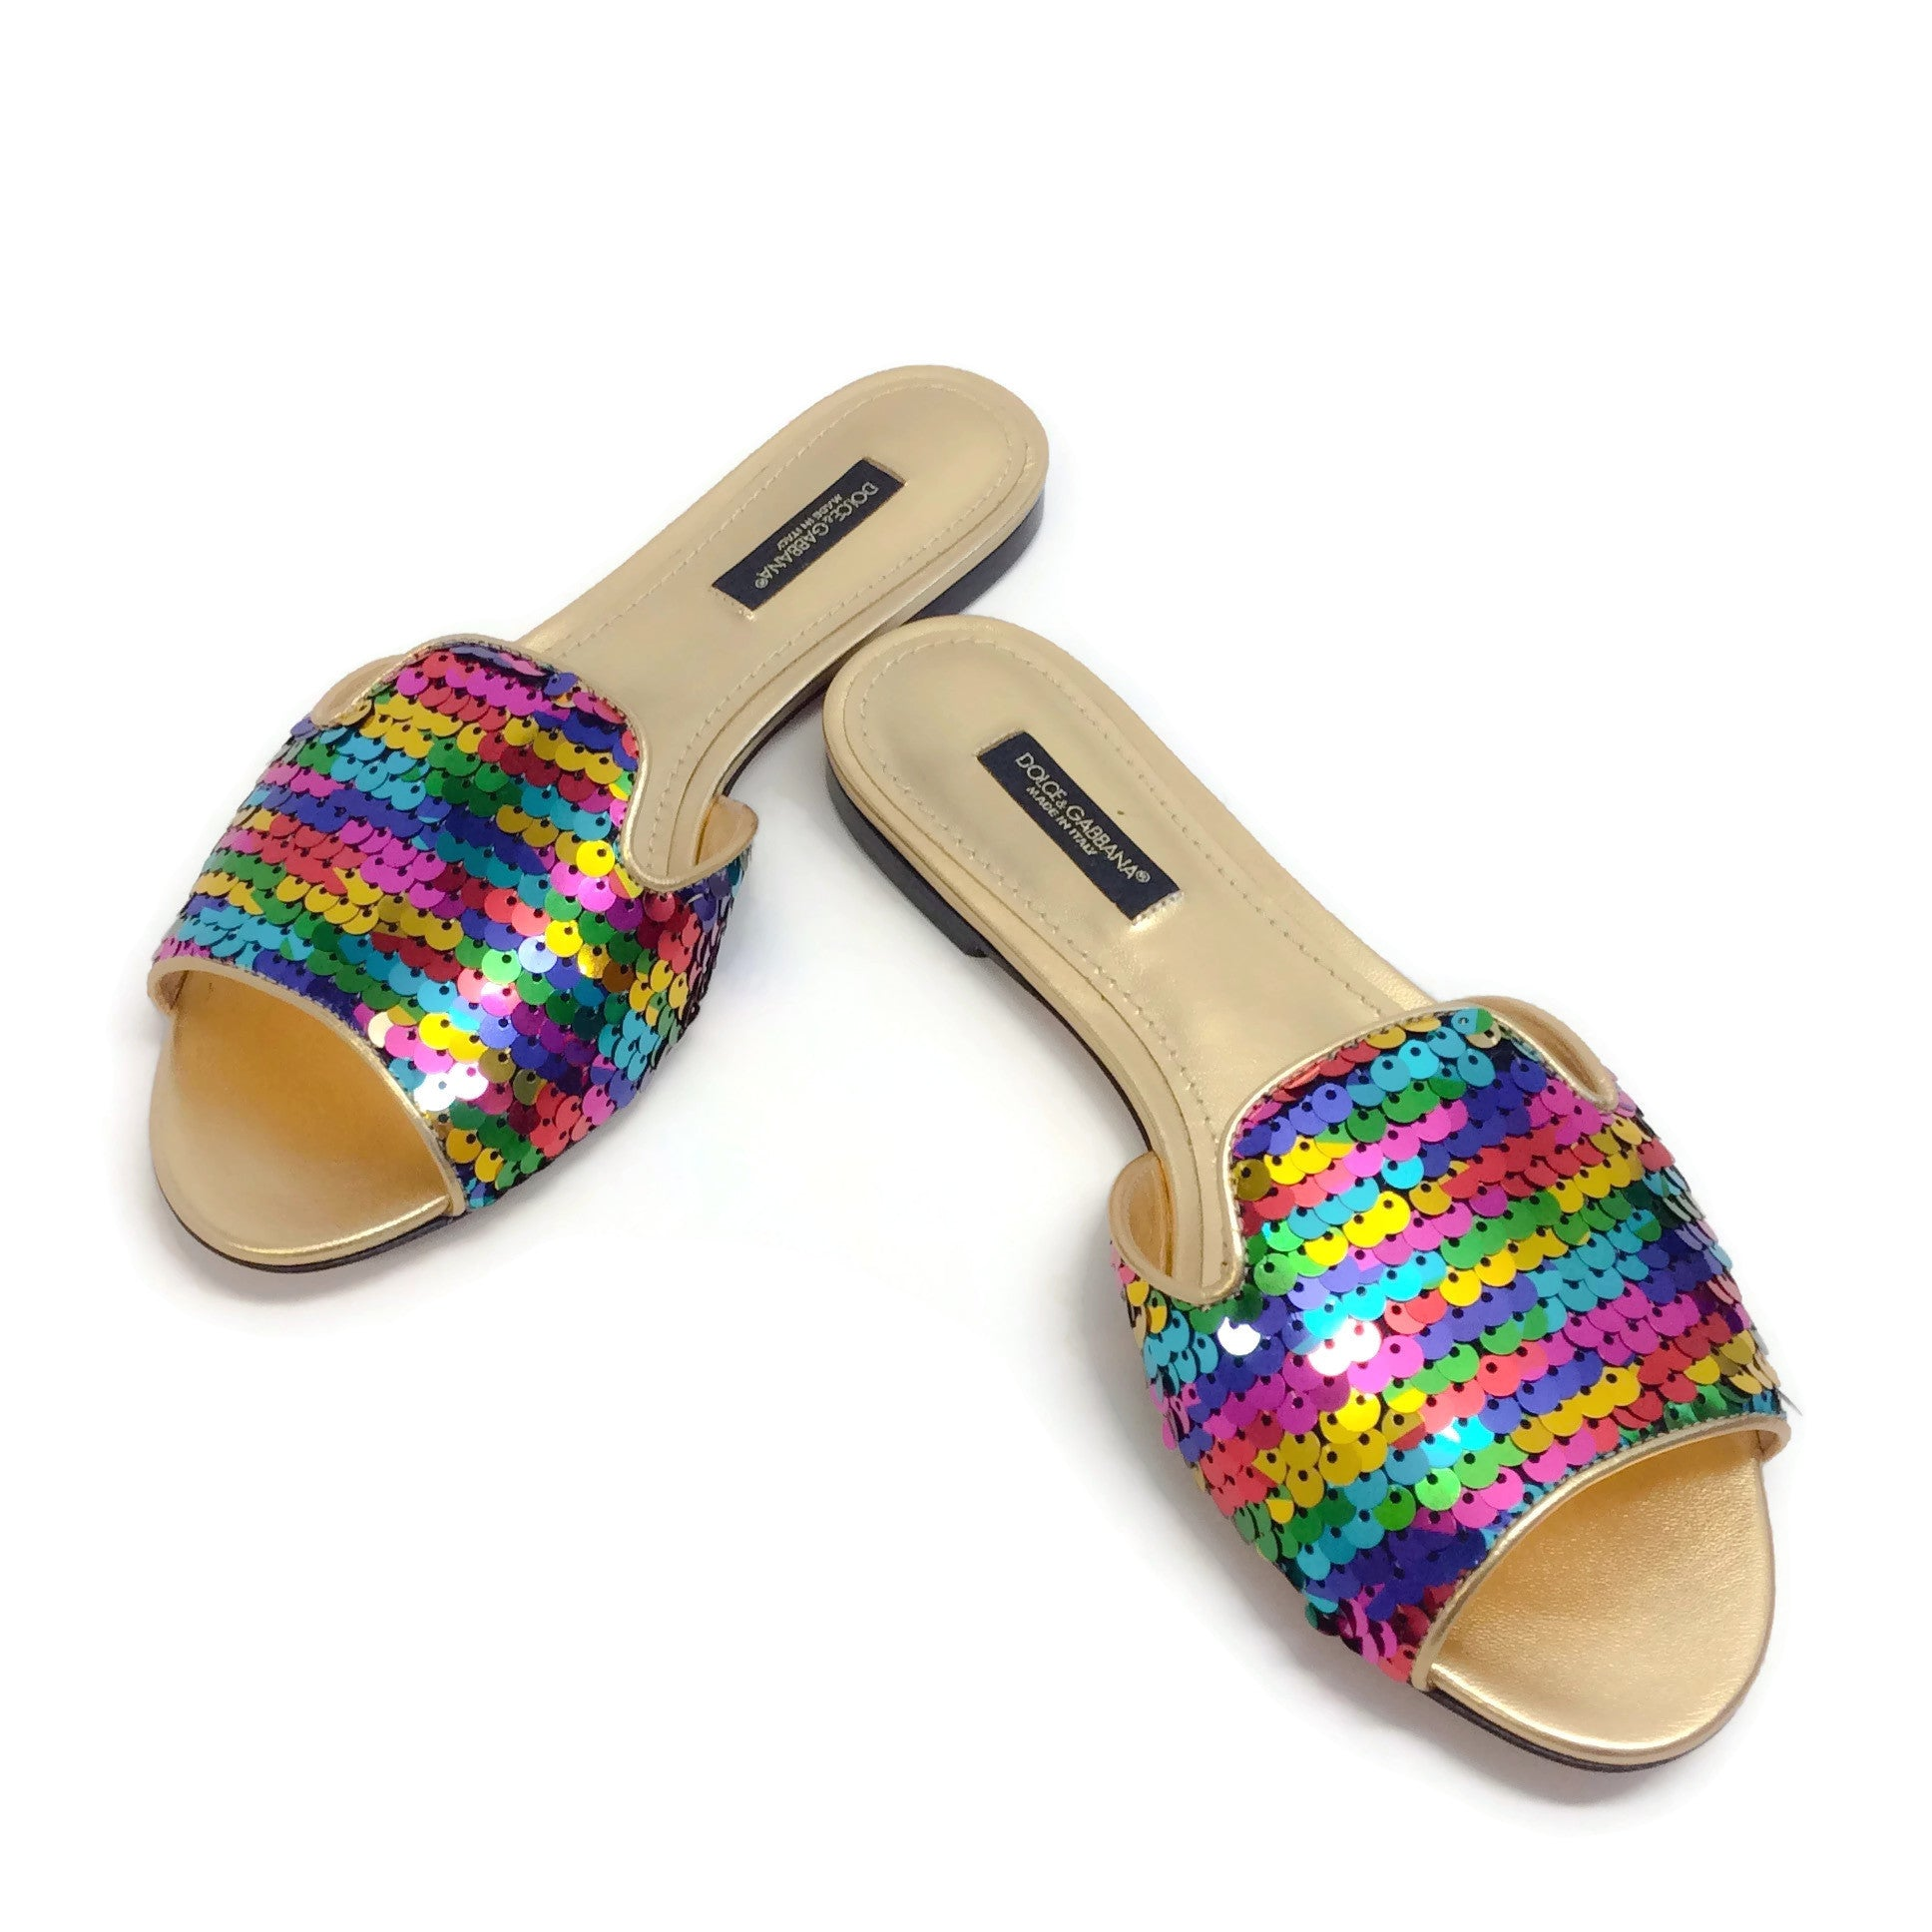 Dolce&Gabbana Rainbow Sequin Slide Sandals